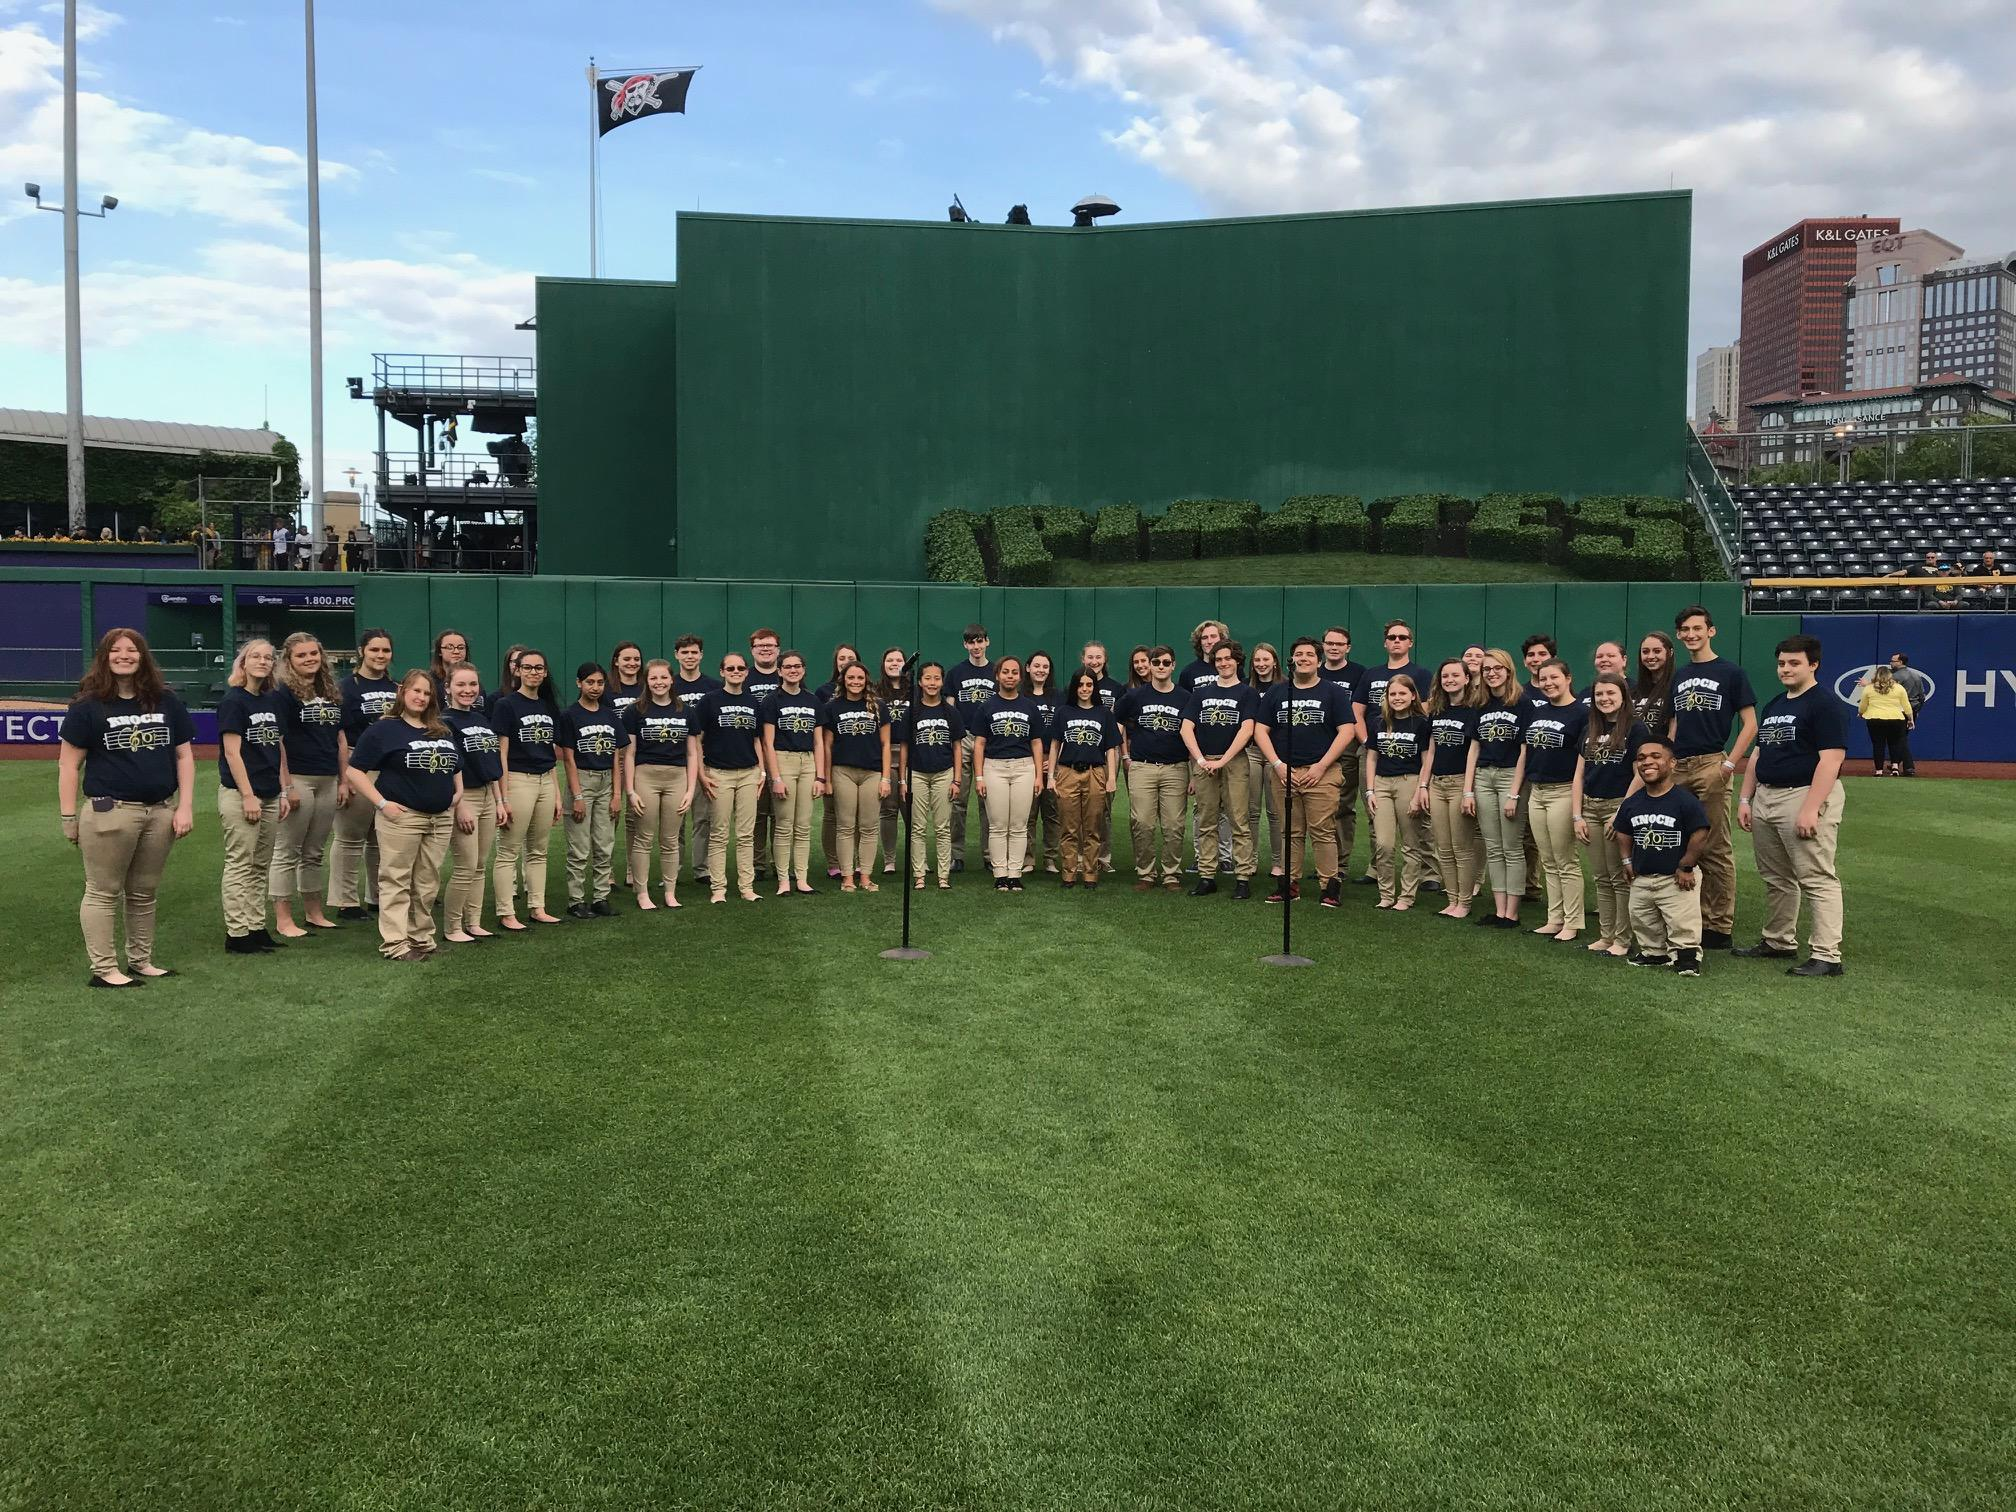 Pic of choir at PNC park